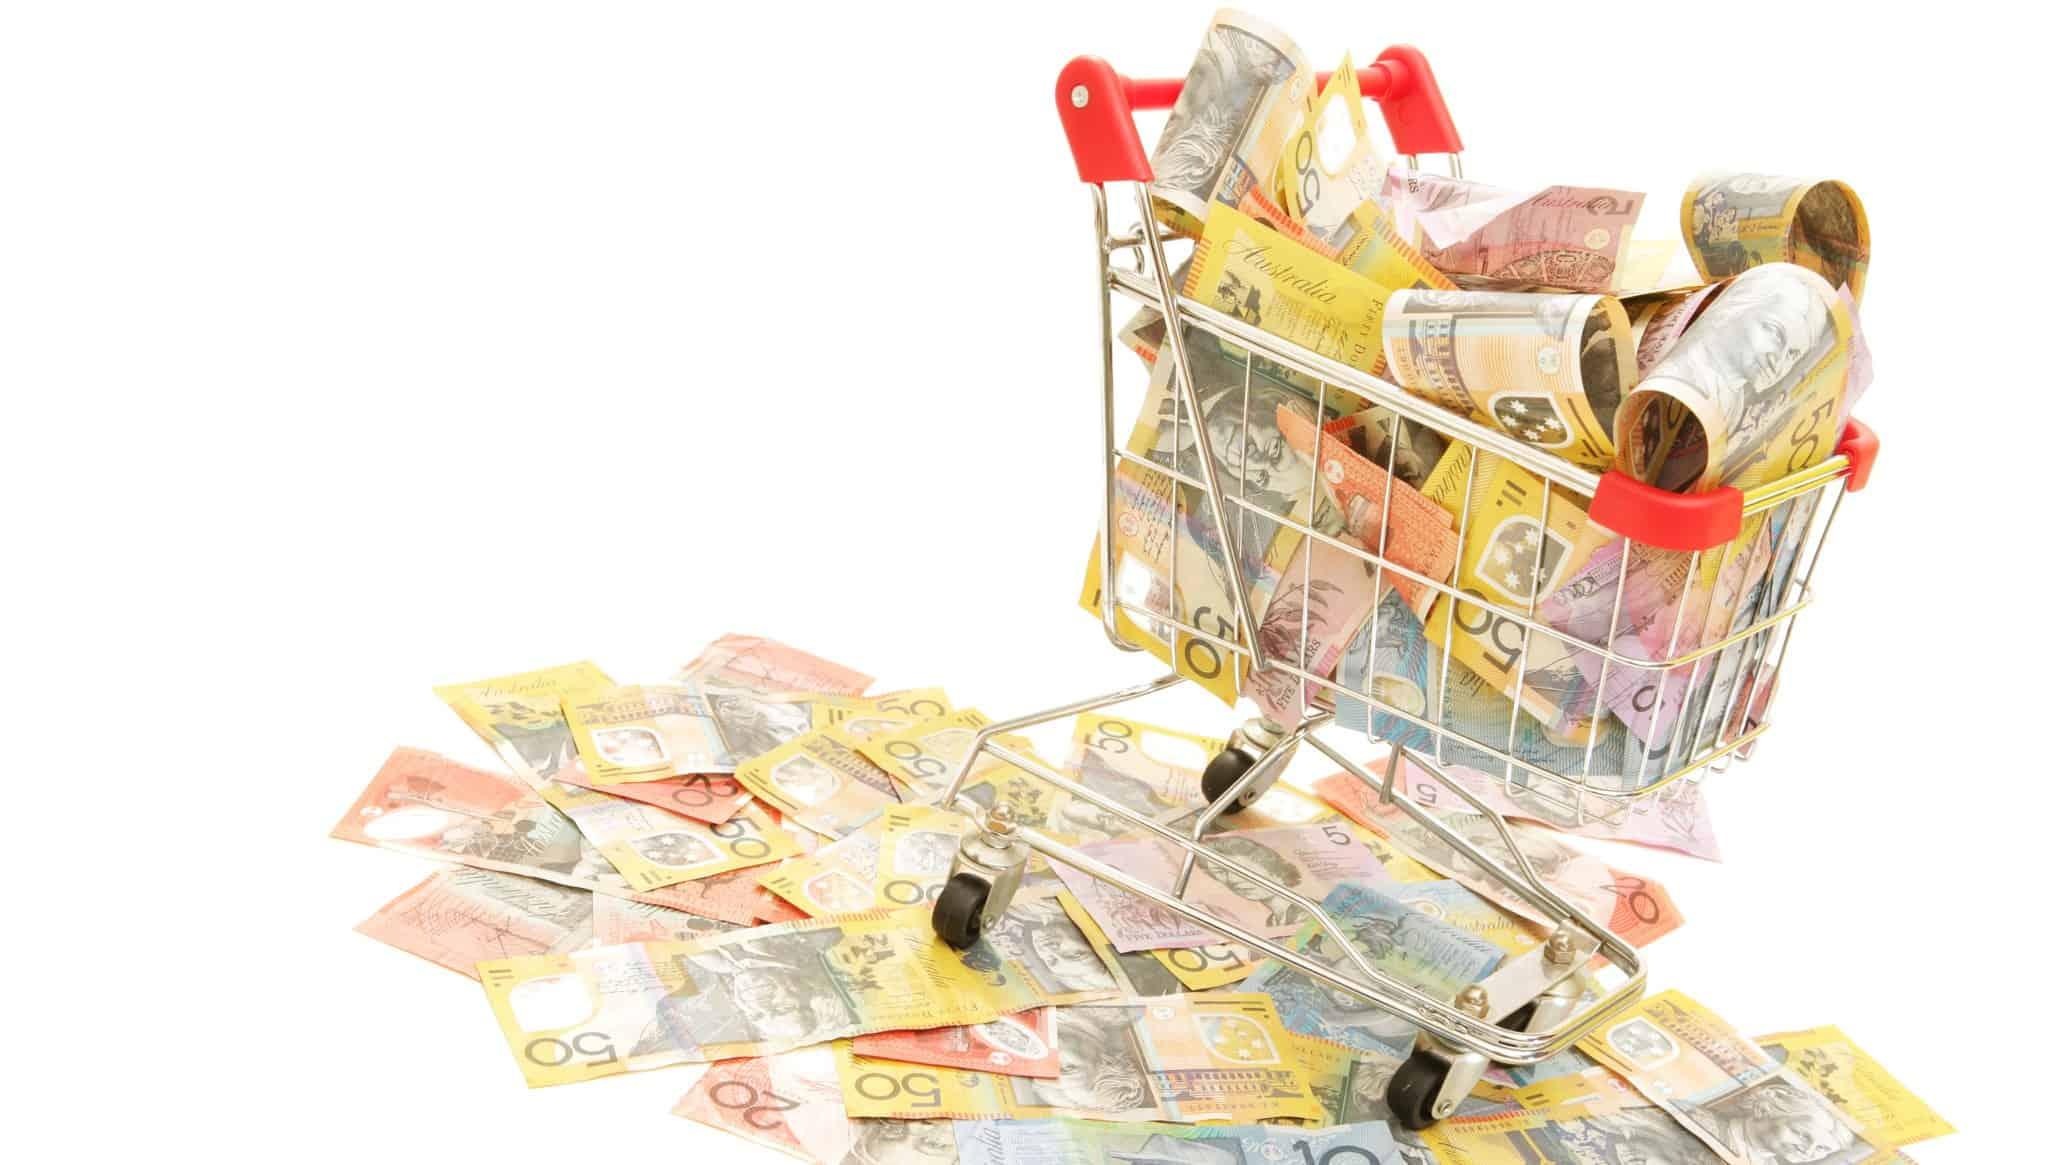 retail asx share price represented by shopping trolley full of cash